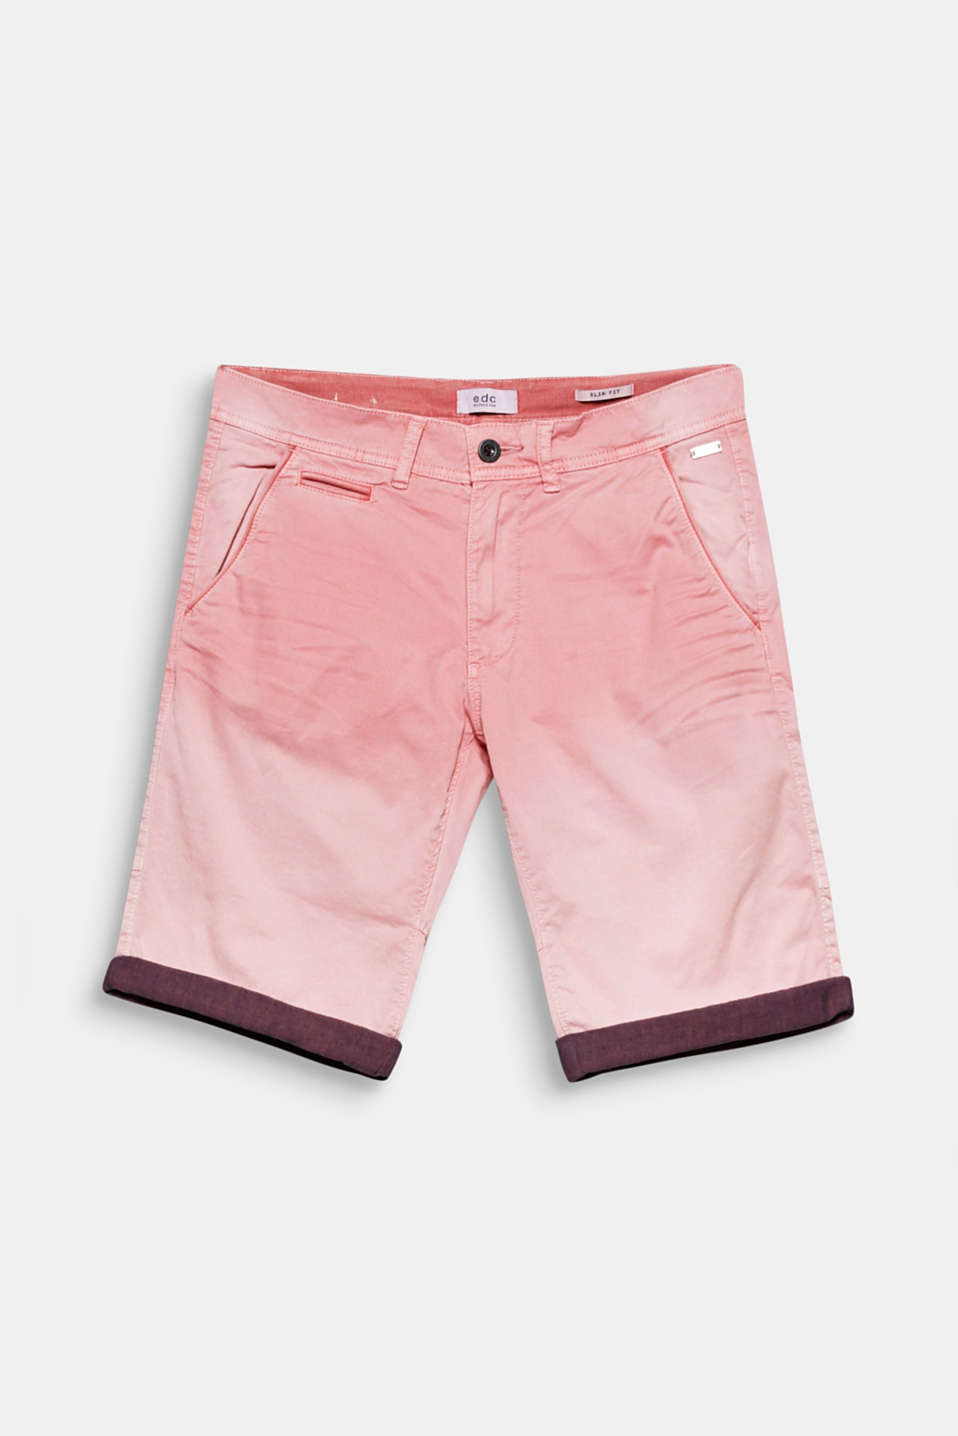 We love dip-dye! The trendy colour gradation makes these shorts a trendy summer style.